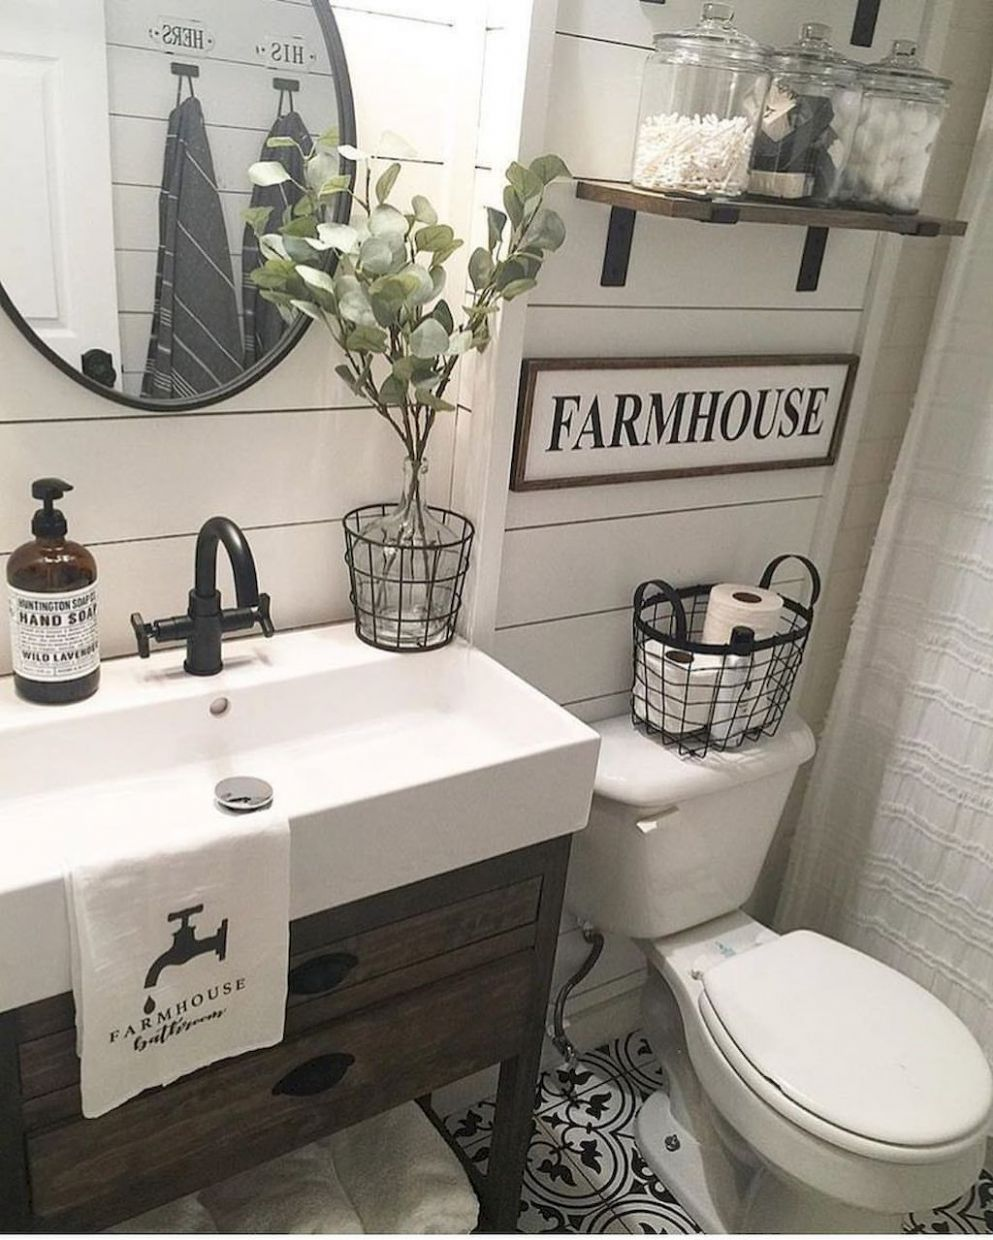 9 TOP RUSTIC FARMHOUSE BATHROOM IDEAS | Modern farmhouse bathroom ..